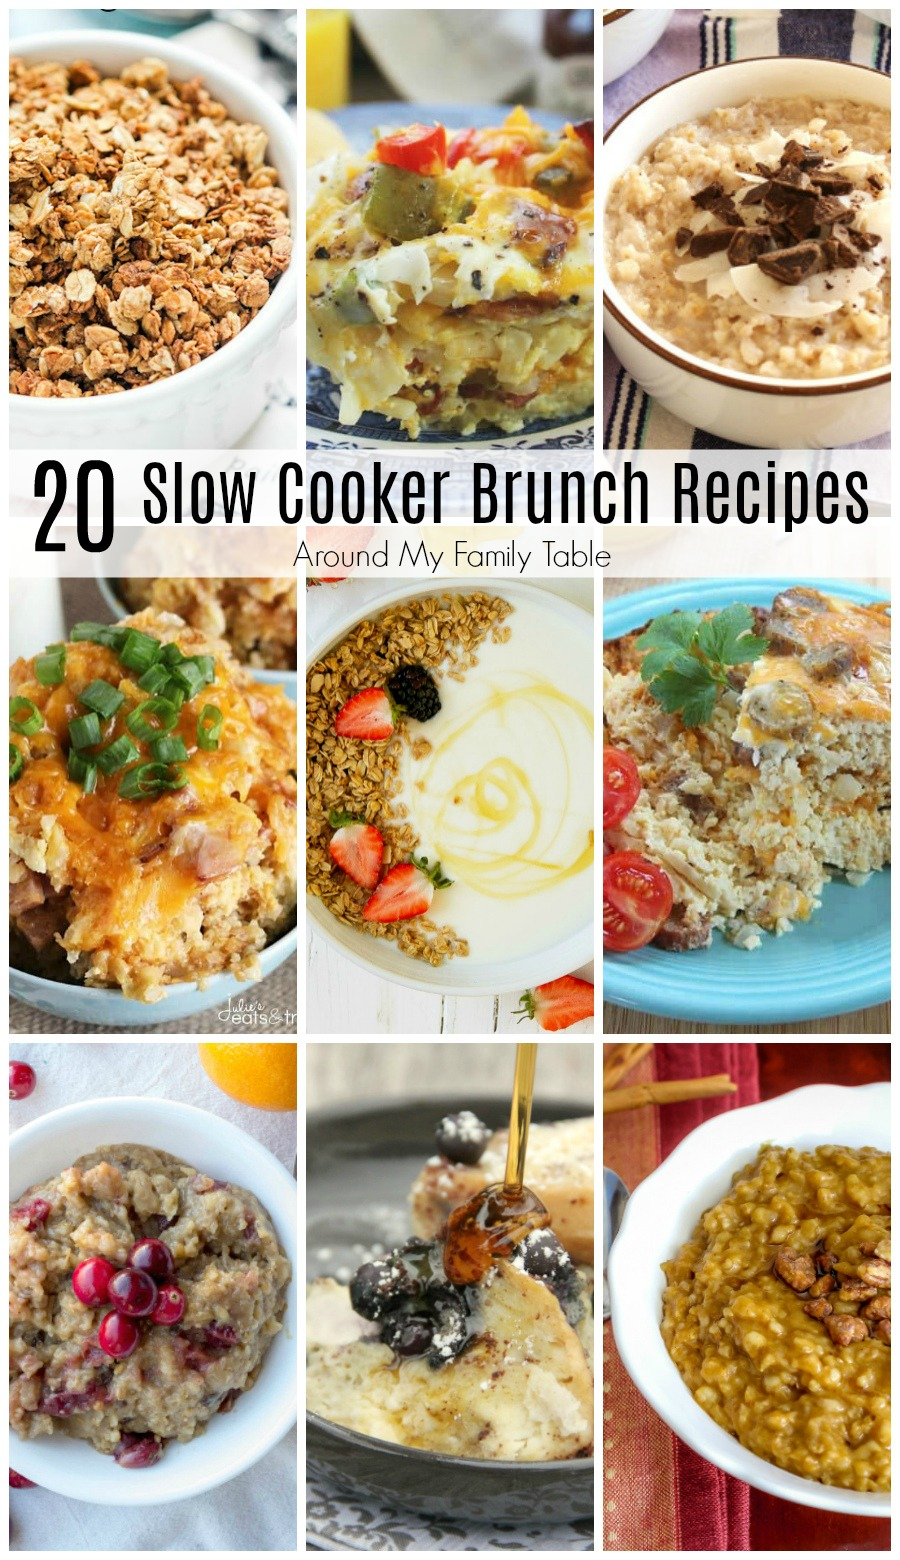 Slow cooker brunch recipes are the perfect thing to make for a weekend brunch! These crock pot recipes are easy to prep and they're absolutely delicious too!